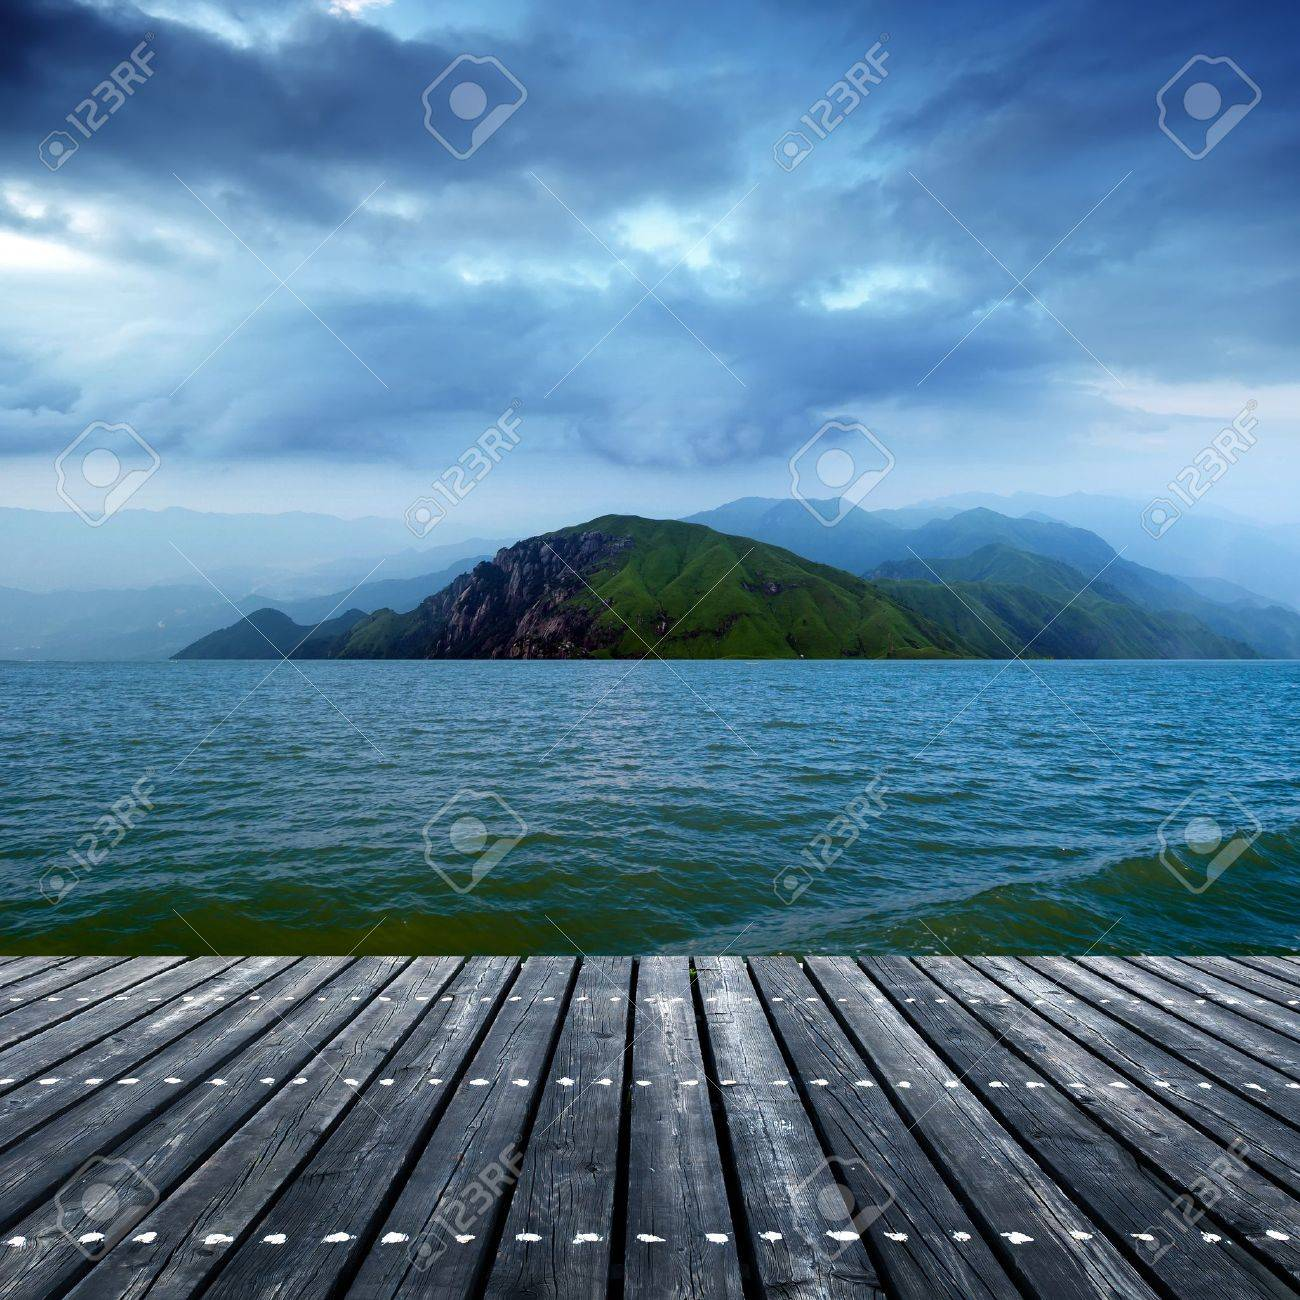 The wooden structures of offshore platforms Stock Photo - 15400860